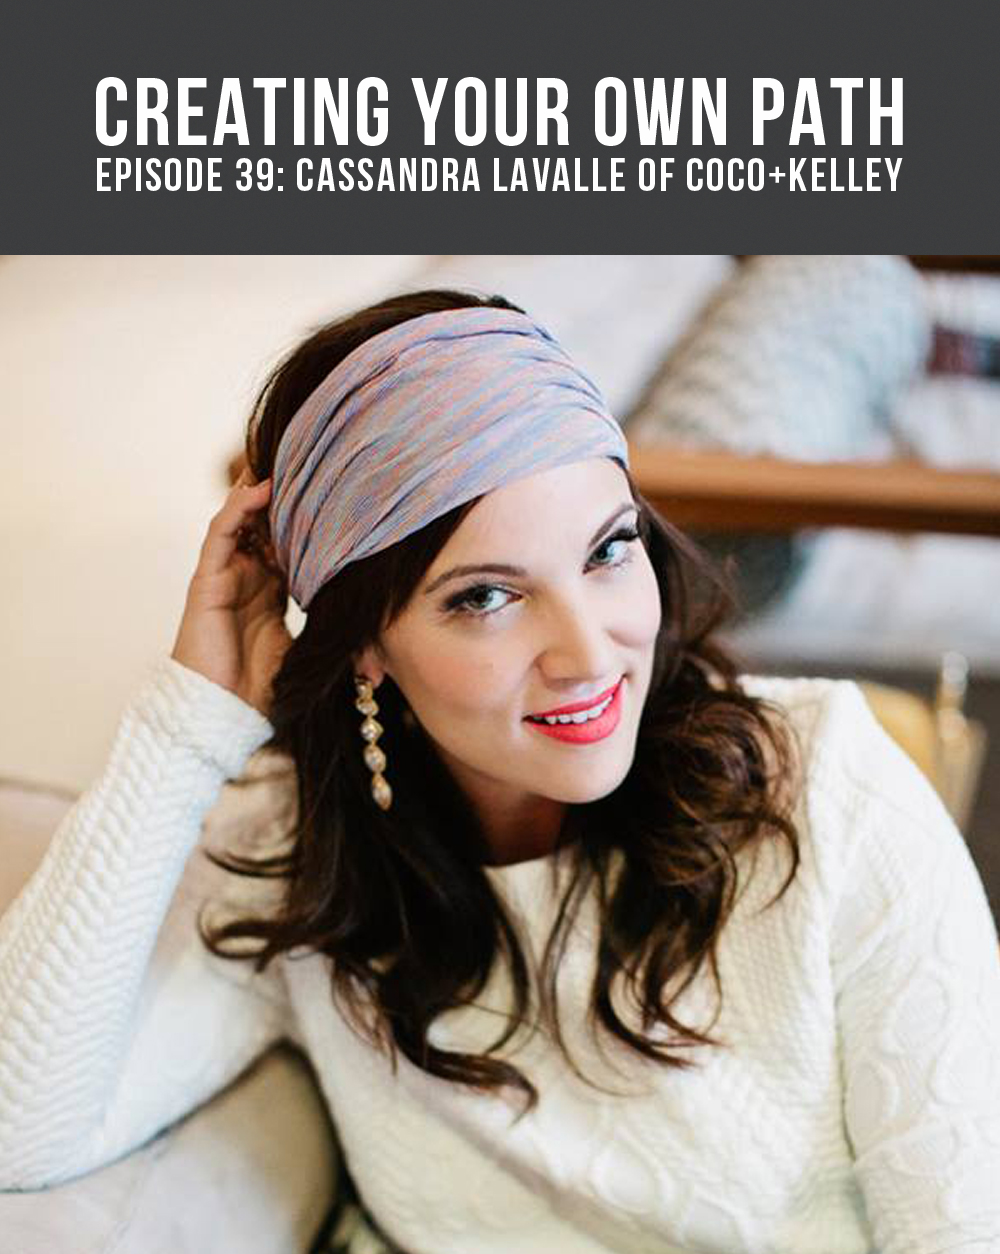 Episode 39 - Creating Your Own Path with Cassandra LaValle of Coco+Kelley // Find the full episode + show notes at creatingyourownpath.com